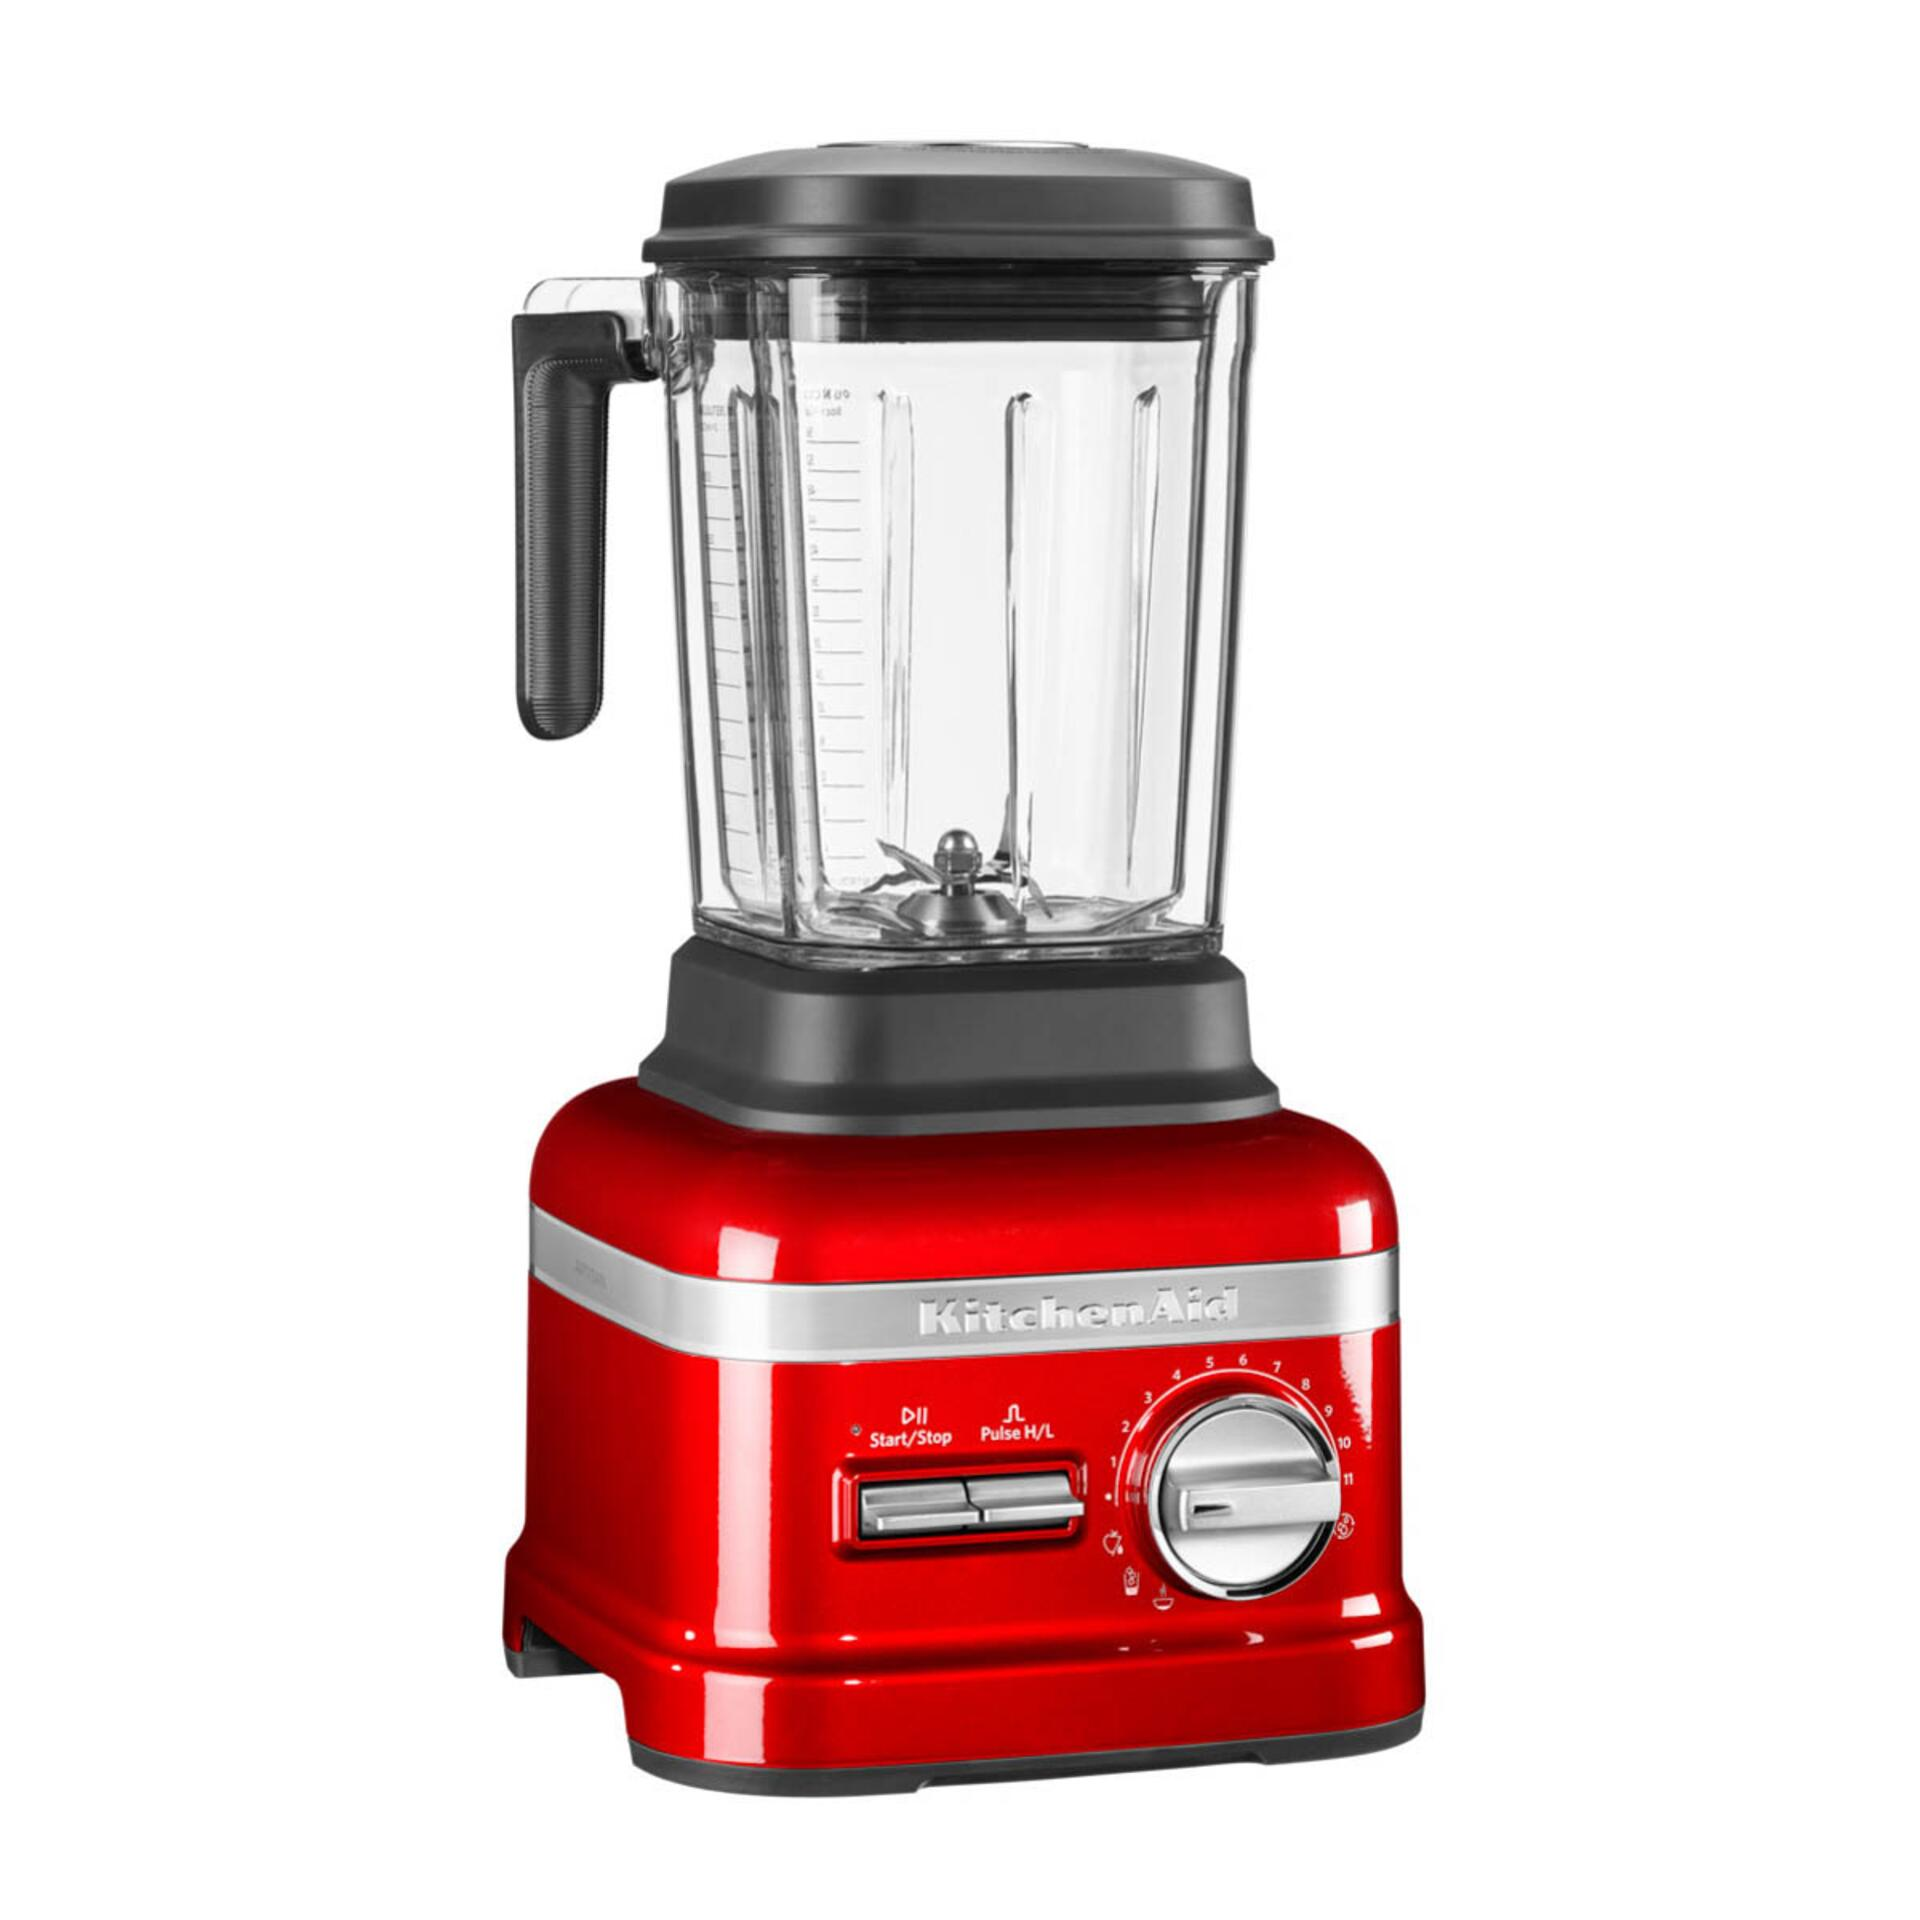 Kitchenaid Artisan Power Plus Blender Standmixer 5KSB8270 Liebesapfel Rot